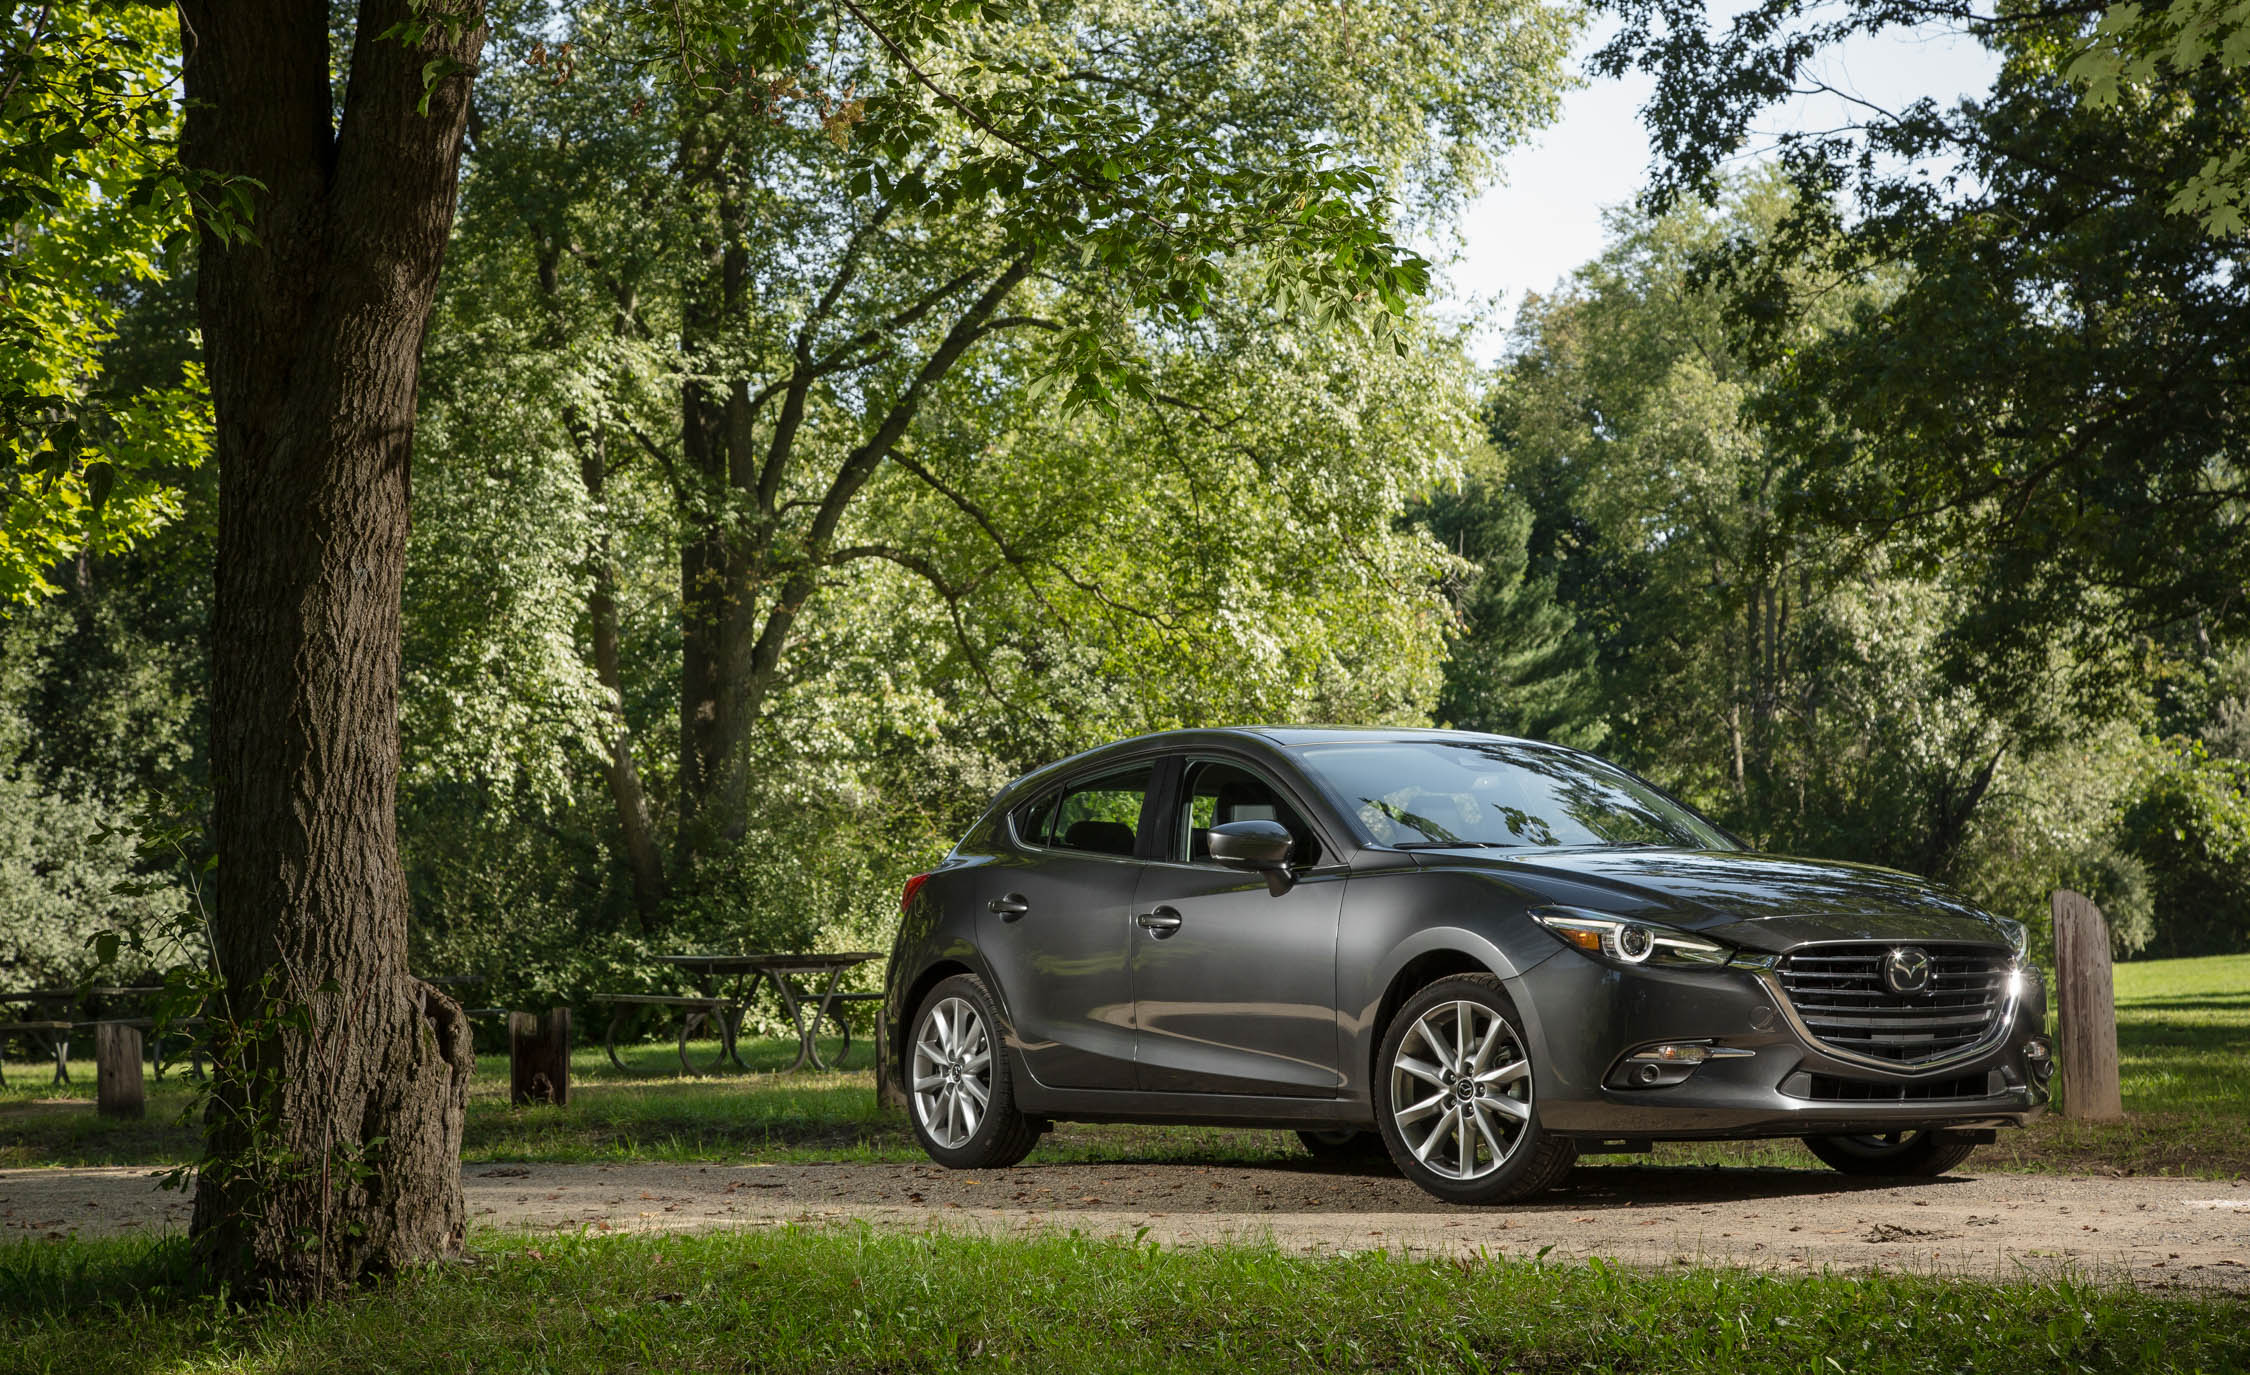 2017 Mazda3 Hatchback Exterior Front And Side View (Photo 26 of 40)